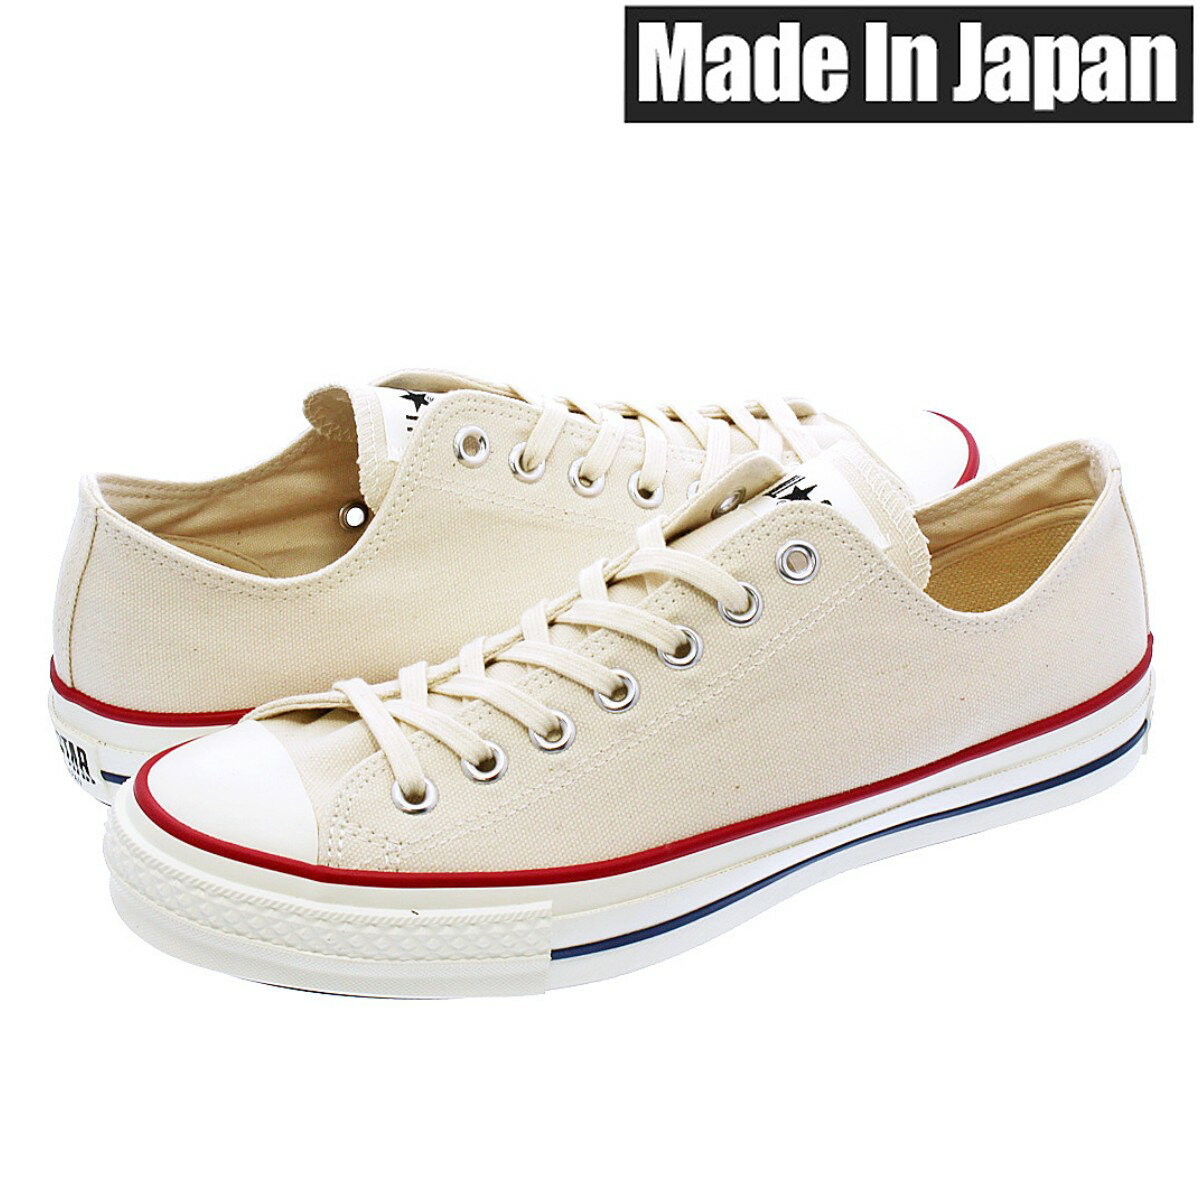 メンズ靴, スニーカー CONVERSE CANVAS ALL STAR J OX MADE IN JAPAN J OX NATURAL WHITE